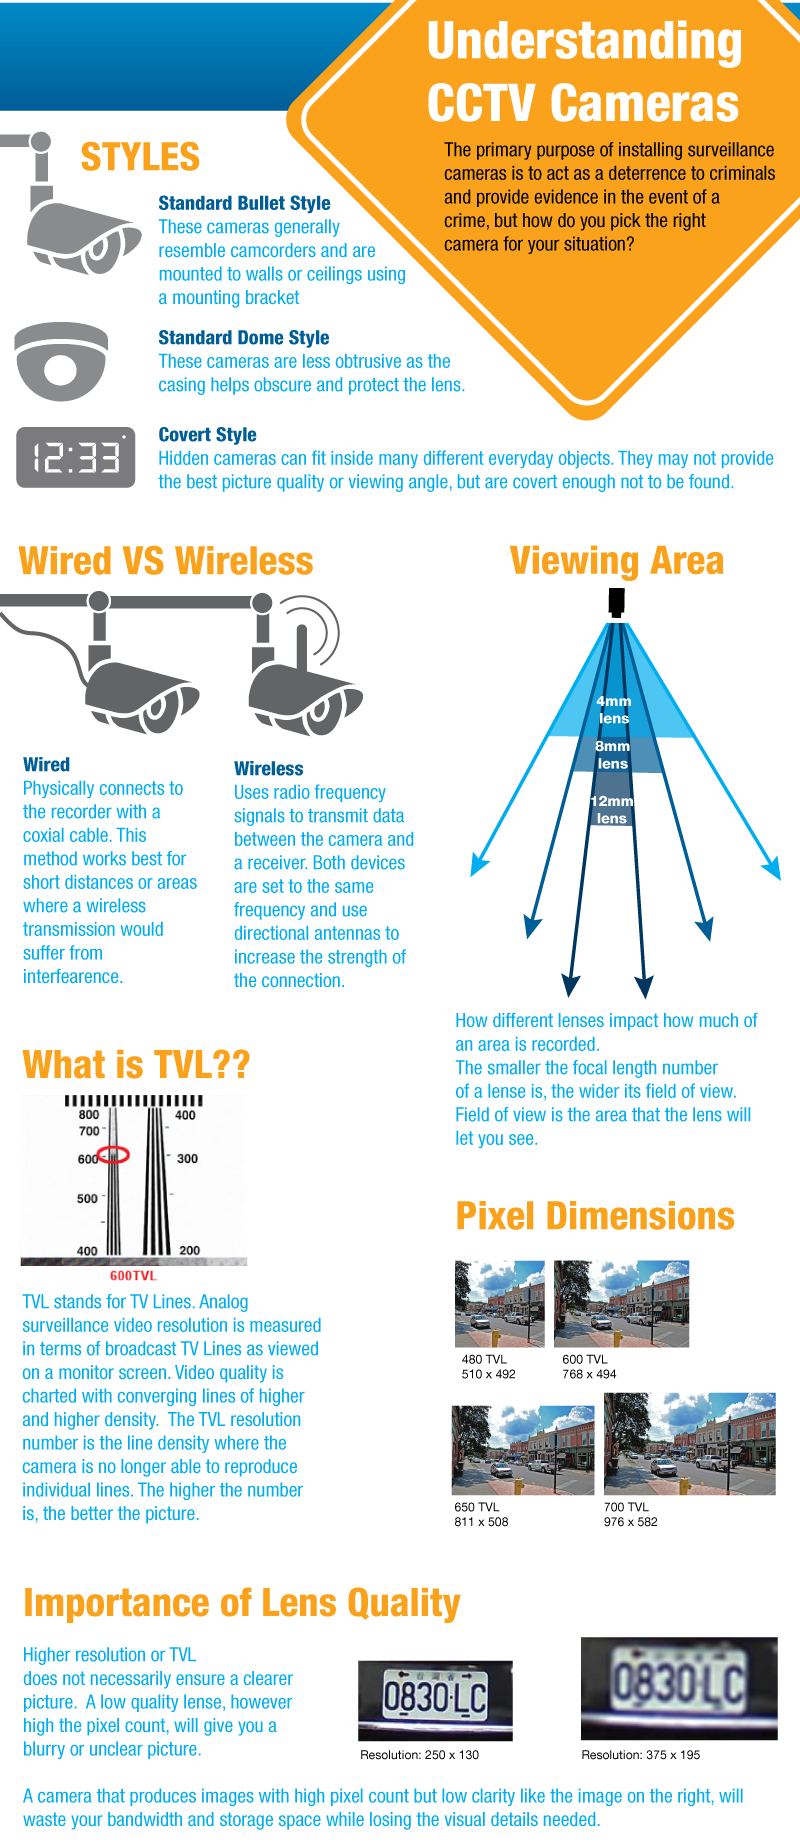 Pin By Tim Gagnon On Security Secrect Stuff In 2018 Pinterest Camera Cable Wire Diagram Many People Recognize The Value Of Having A Cctv System But Feel Overwhelmed About Options And Dont Know Where To Start This Infographic Is Great